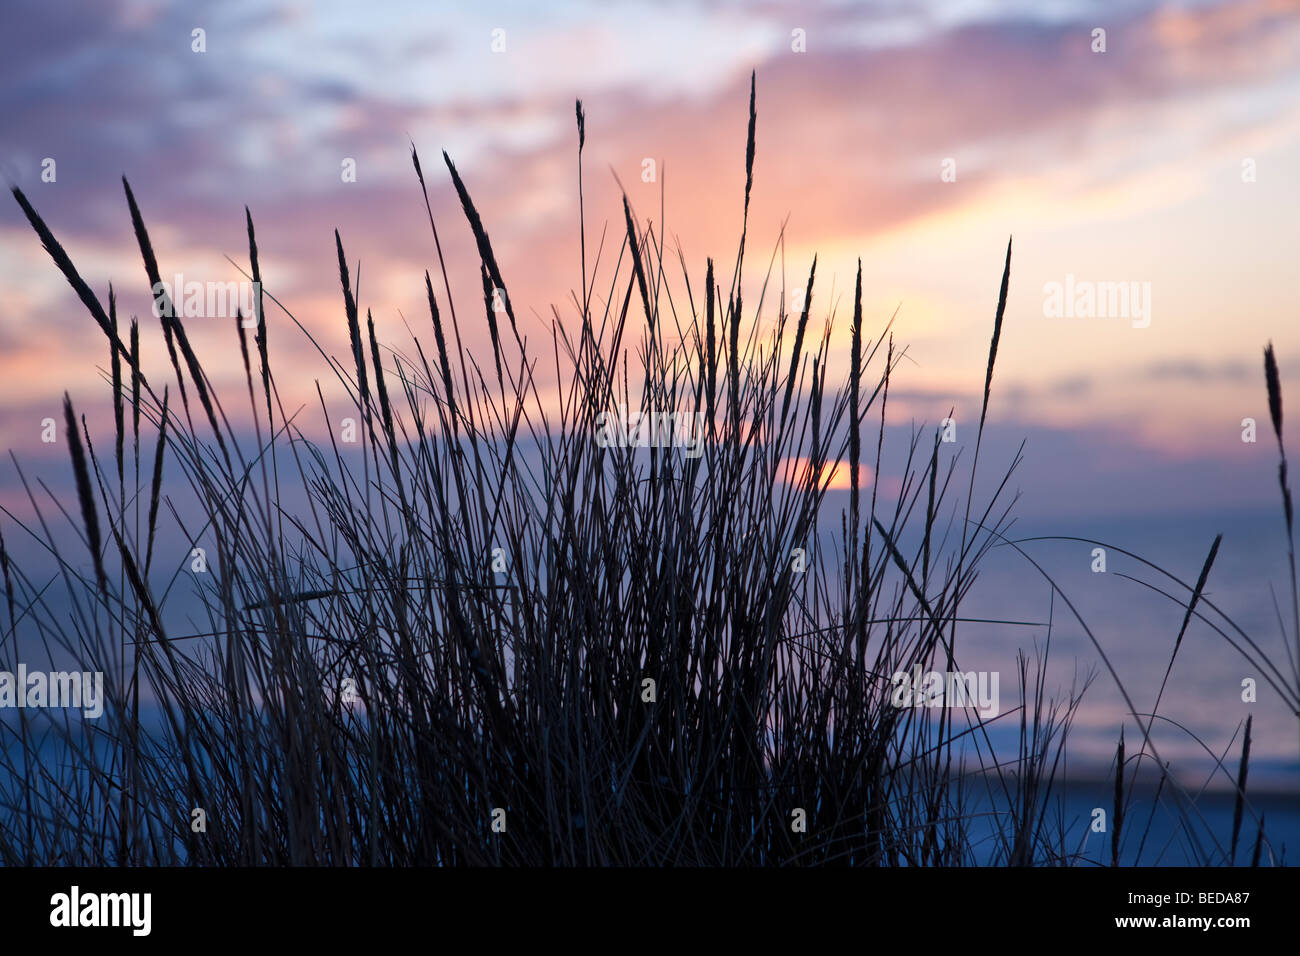 Dune grass at sunset, Kampen, Sylt, North Frisian Islands, Schleswig-Holstein, Germany, Europe - Stock Image